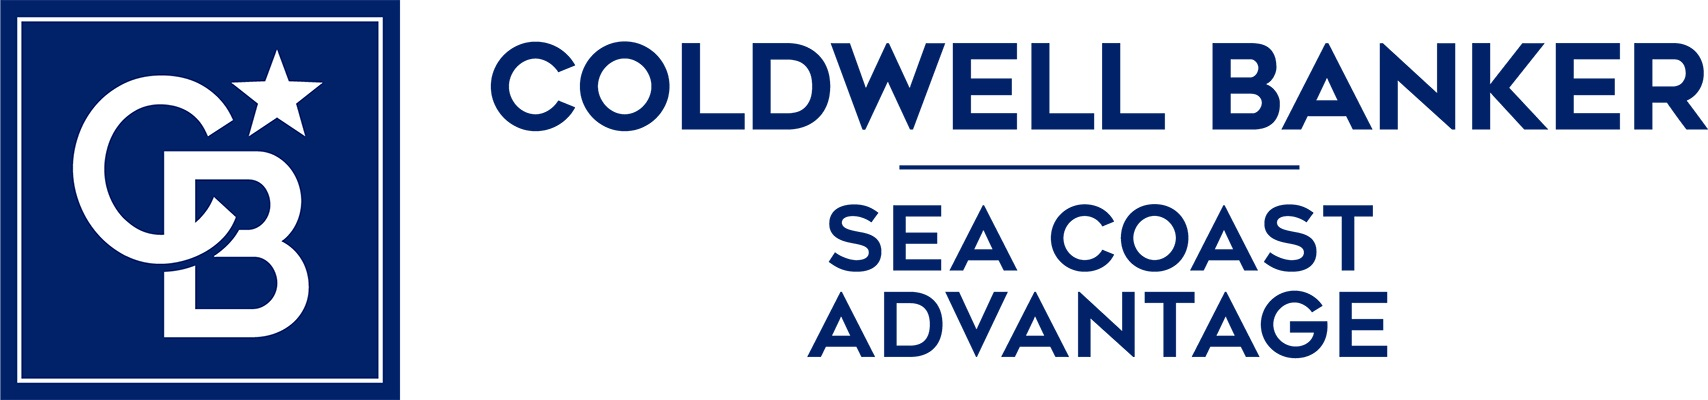 Linda Pelland - Coldwell Banker Sea Coast Advantage Realty Logo